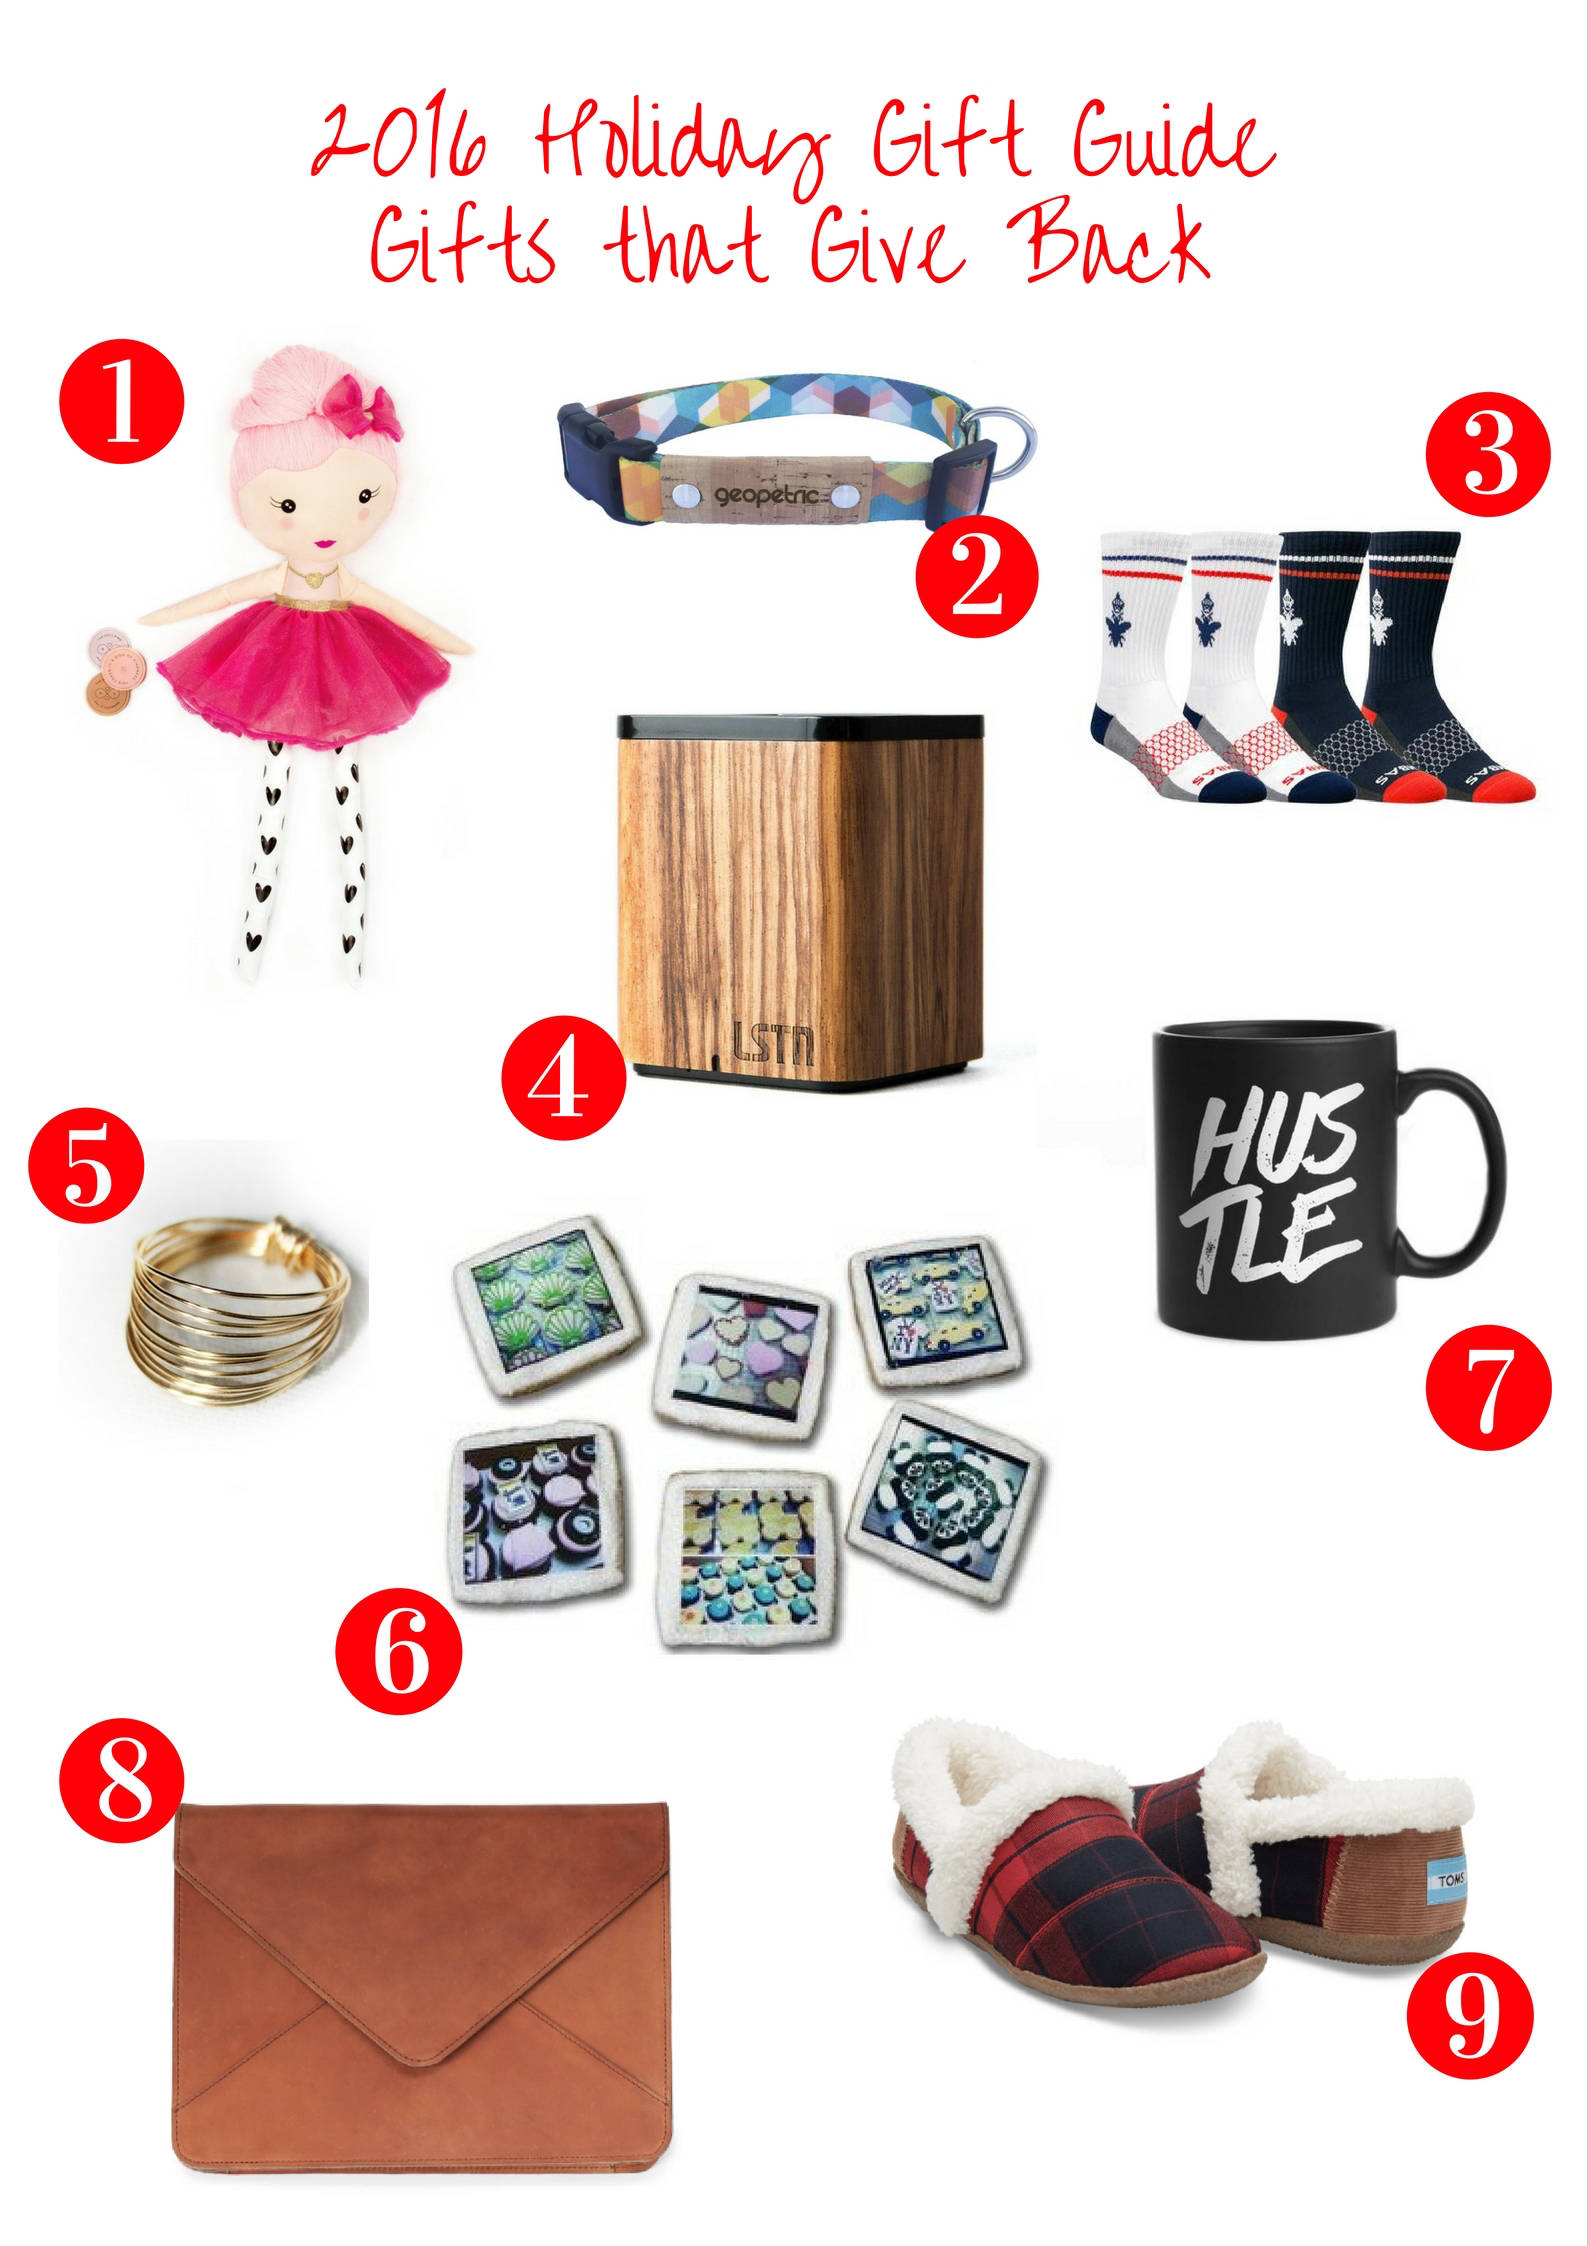 2016 Holiday Gift Guide: Gifts that Give Back